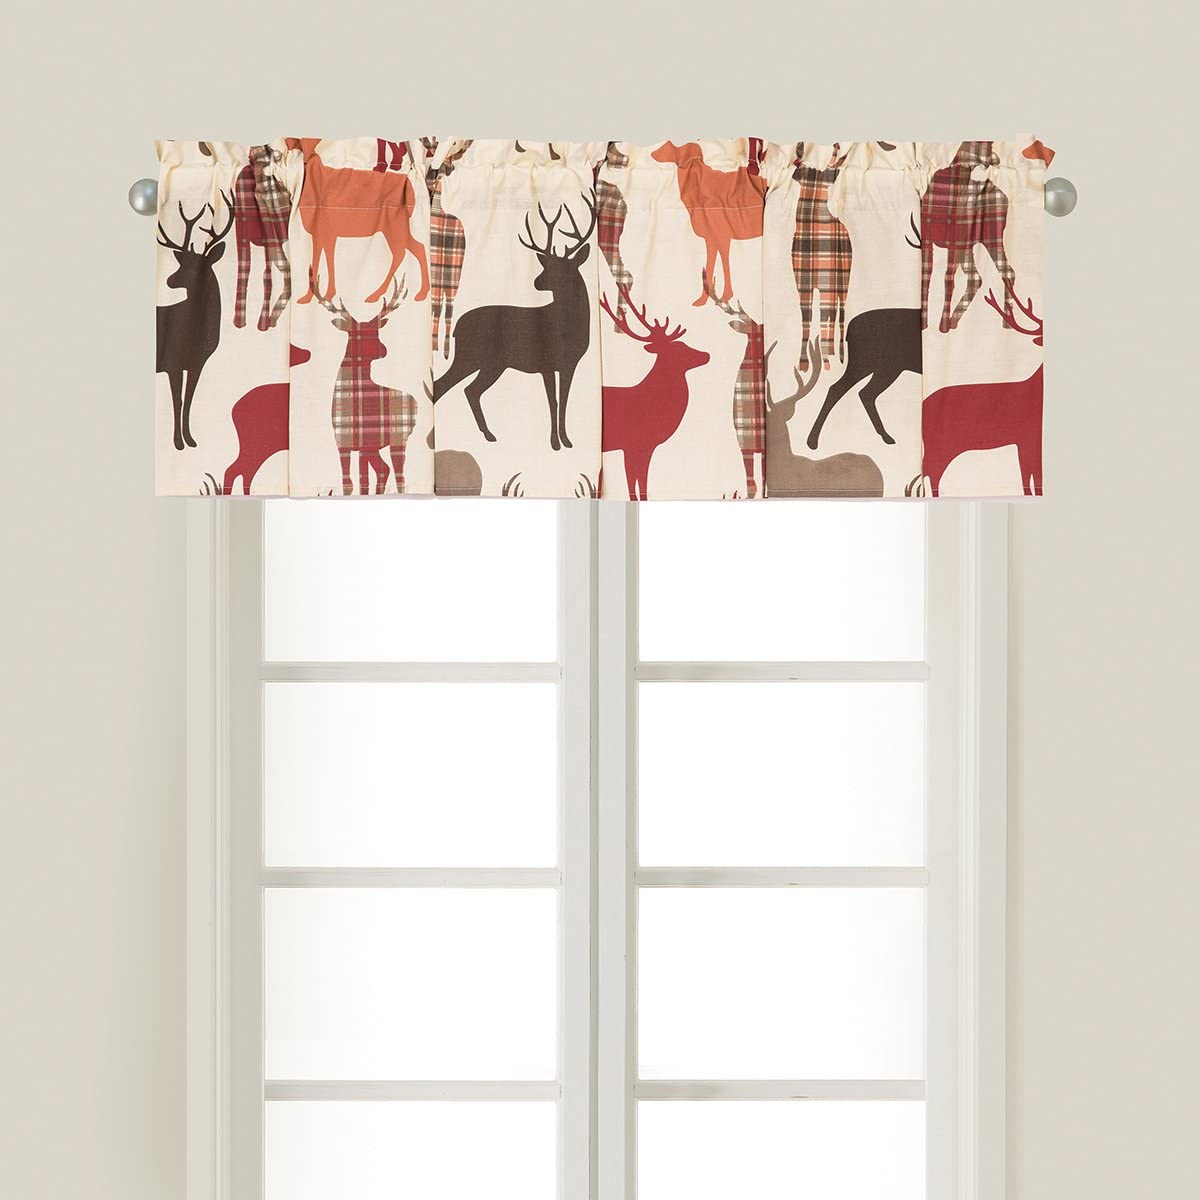 C F Home Colton Lodge Cabin Deer Camping Forest Red Cream Brown Cotton Bedroom Guestroom Premium Window Valance Set of 2 Valance Set of 2 tan